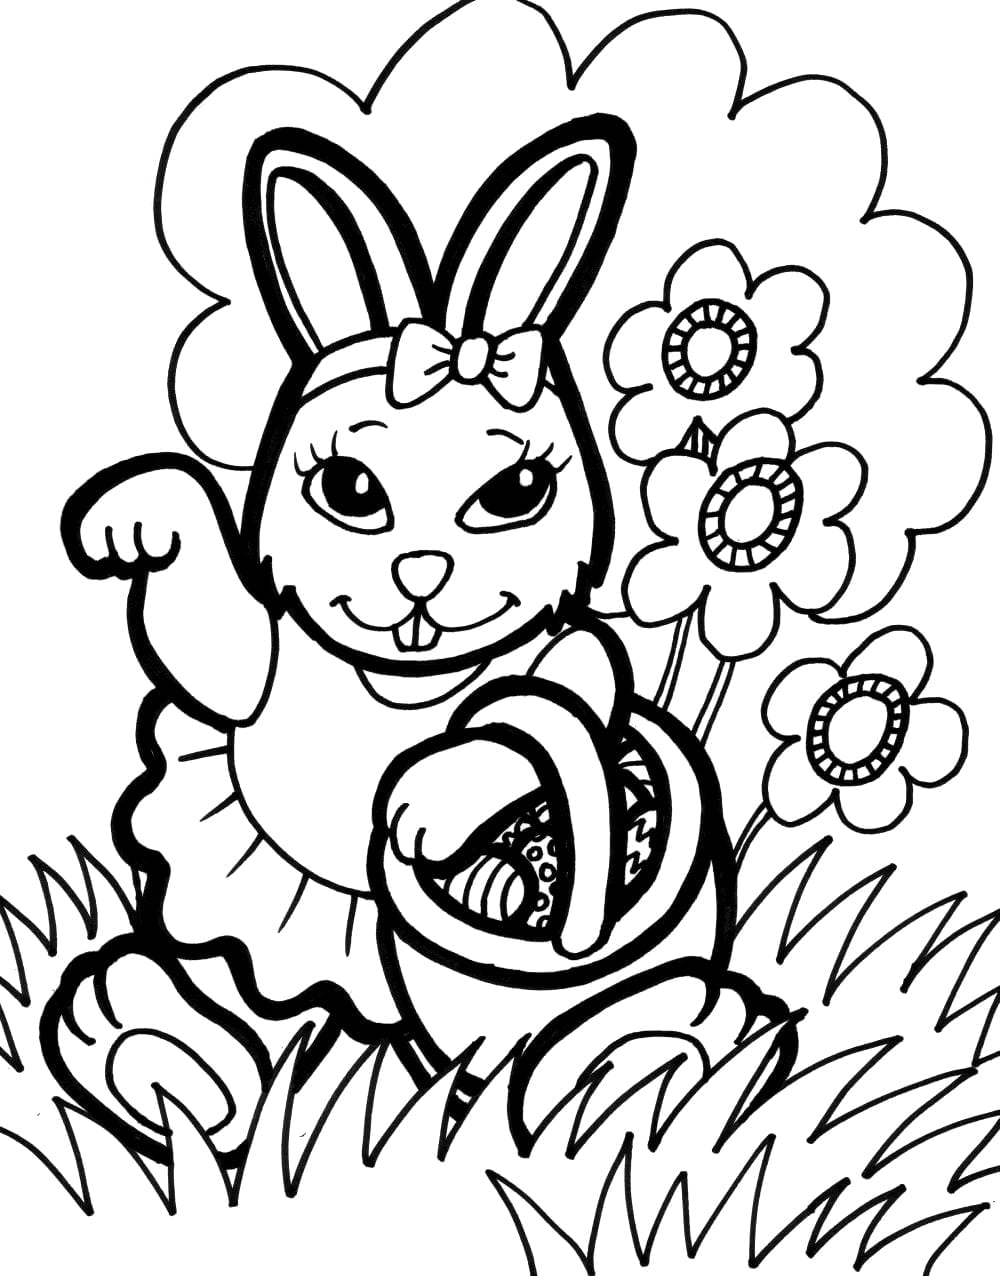 Bunny Coloring Pages Best Coloring Pages For Kids Bunny Coloring